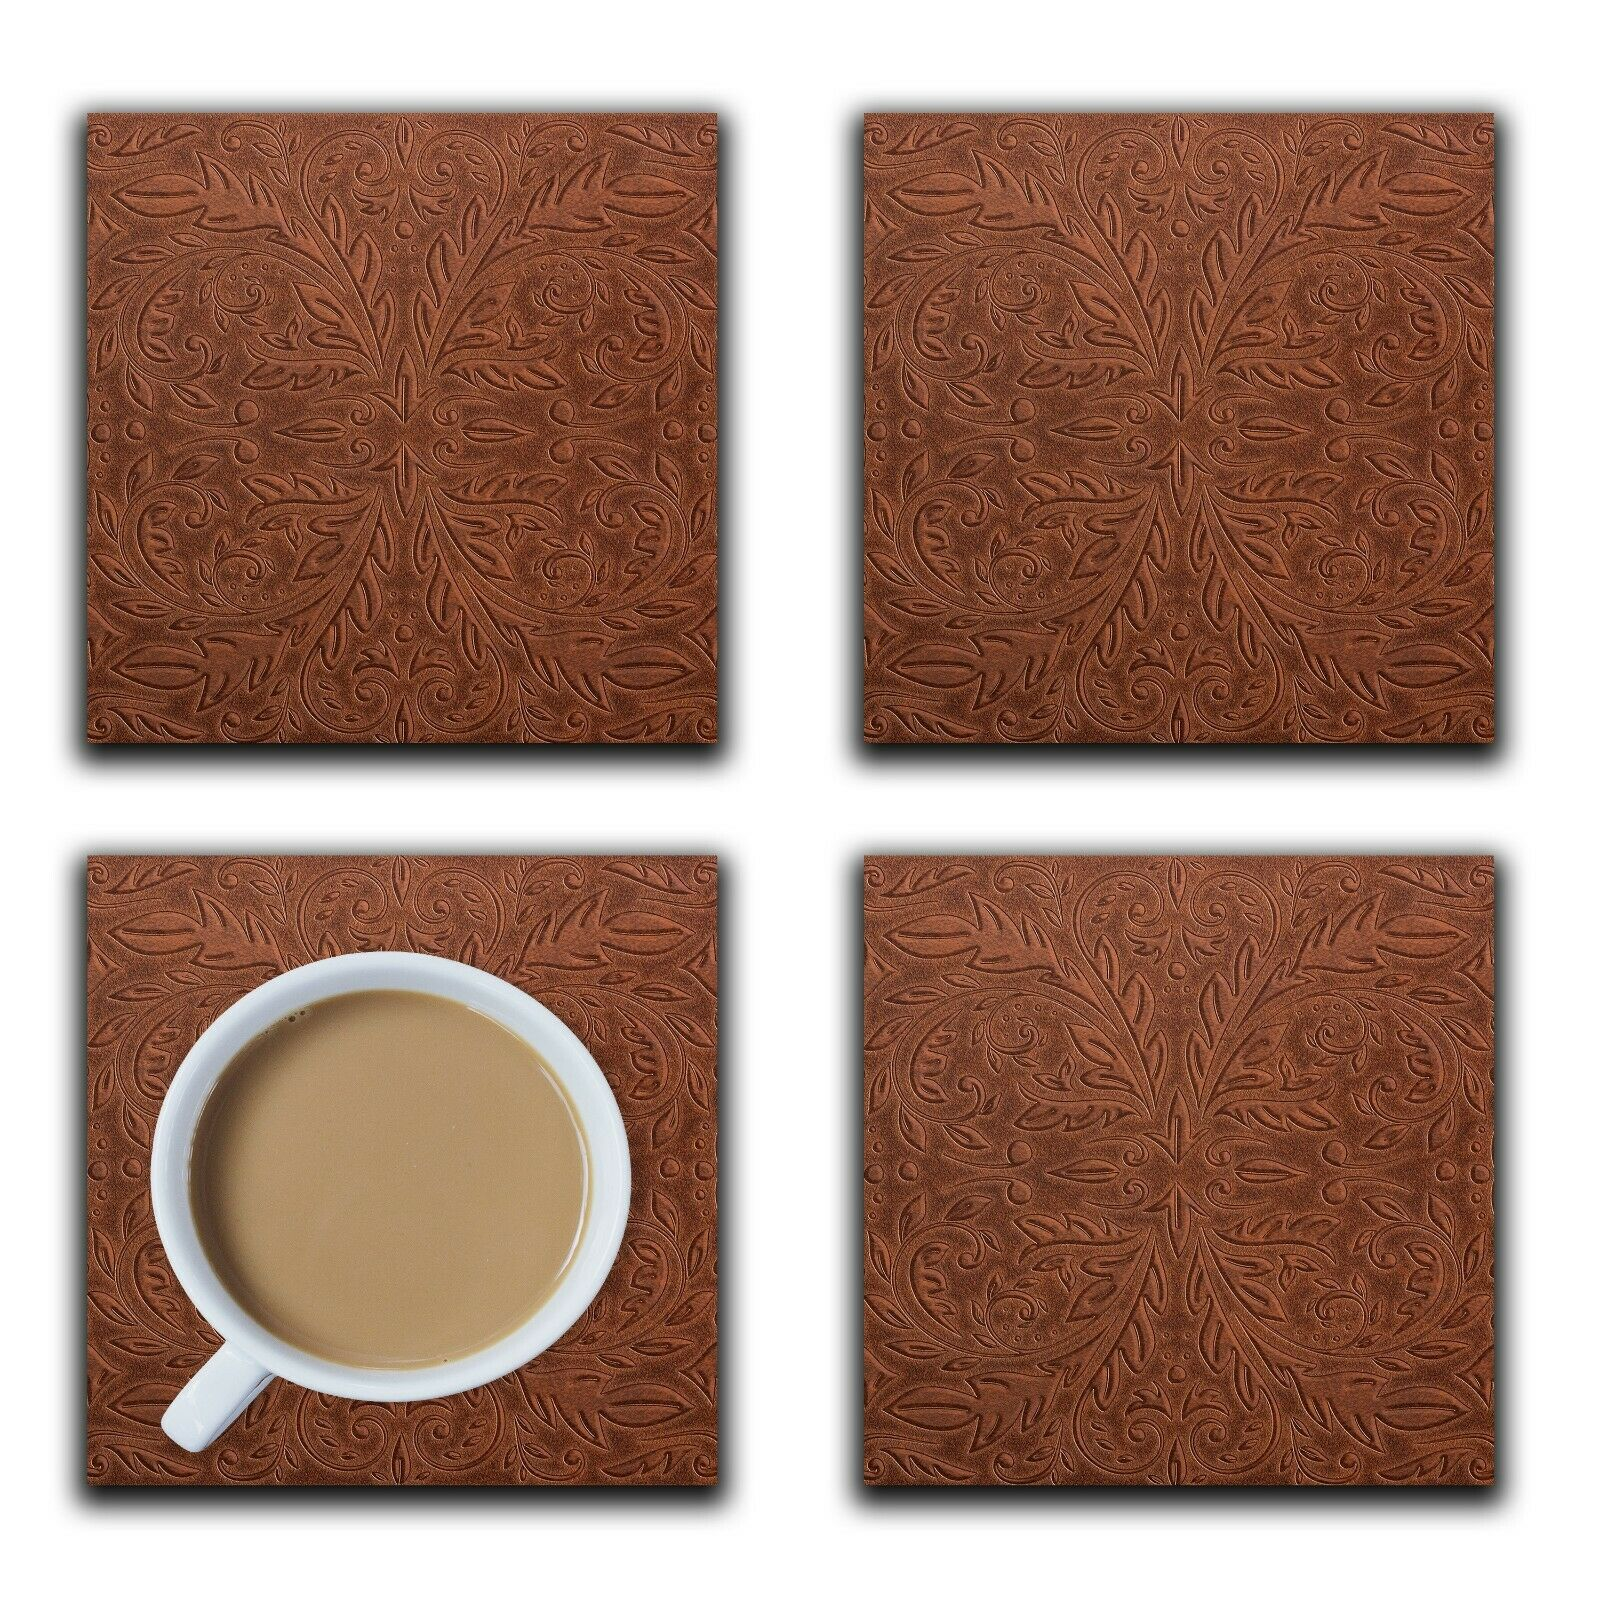 Embossi Printed Western Saddle Leather Pattern, wood or ceramic tile, 4 Coasters